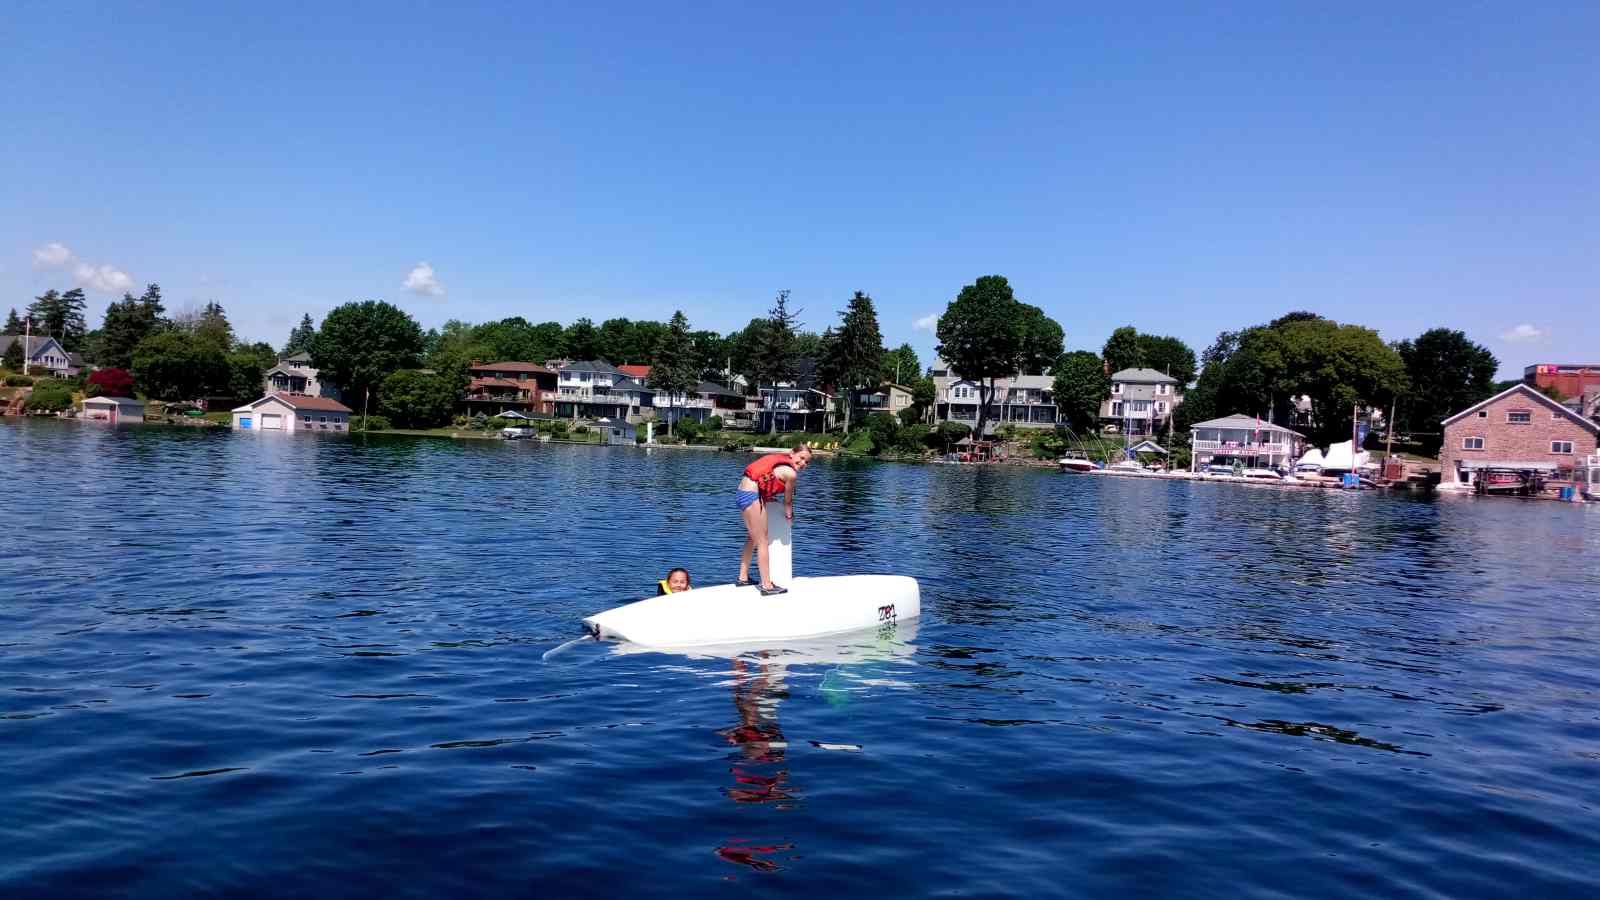 Brockville Yacht Club Sailing School turtled sailboat fun dumpday.jpg